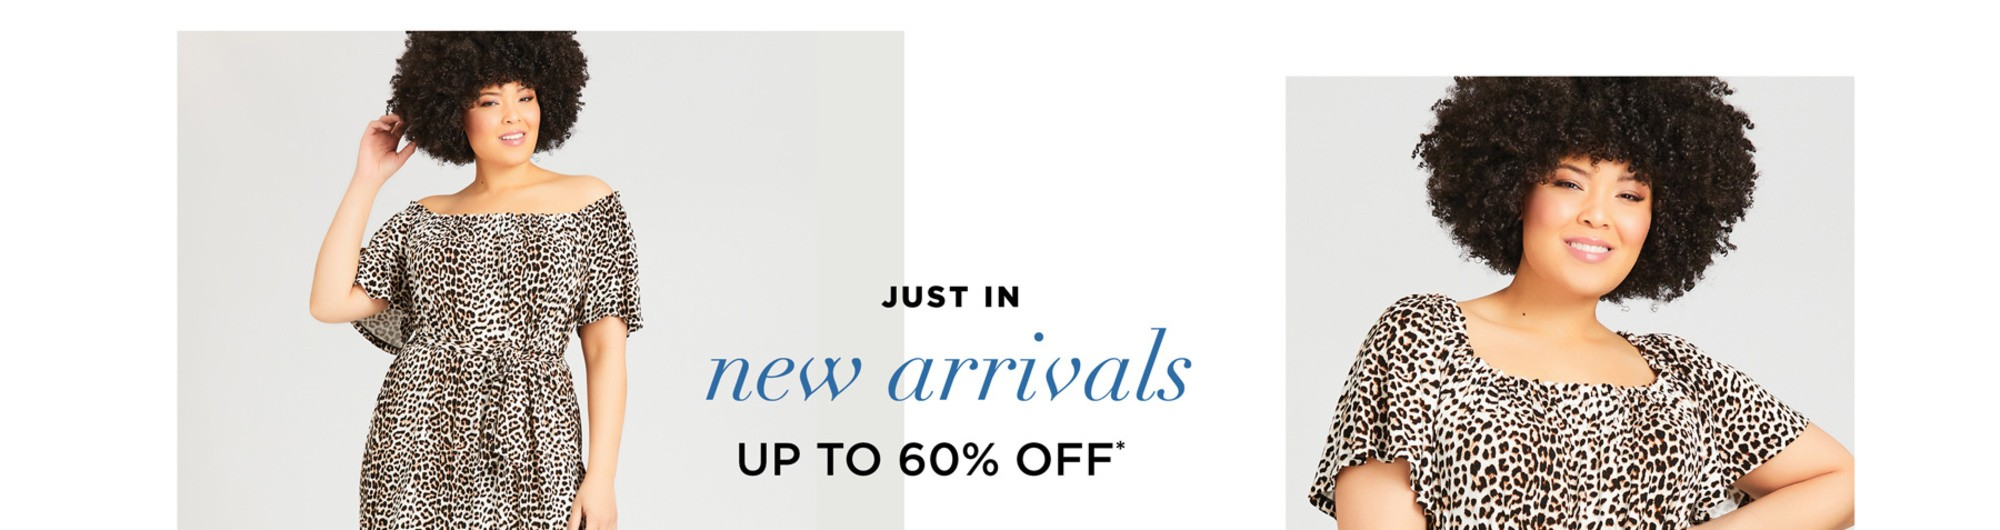 Just In New Arrivals - Up to 60% Off* - Shop Now